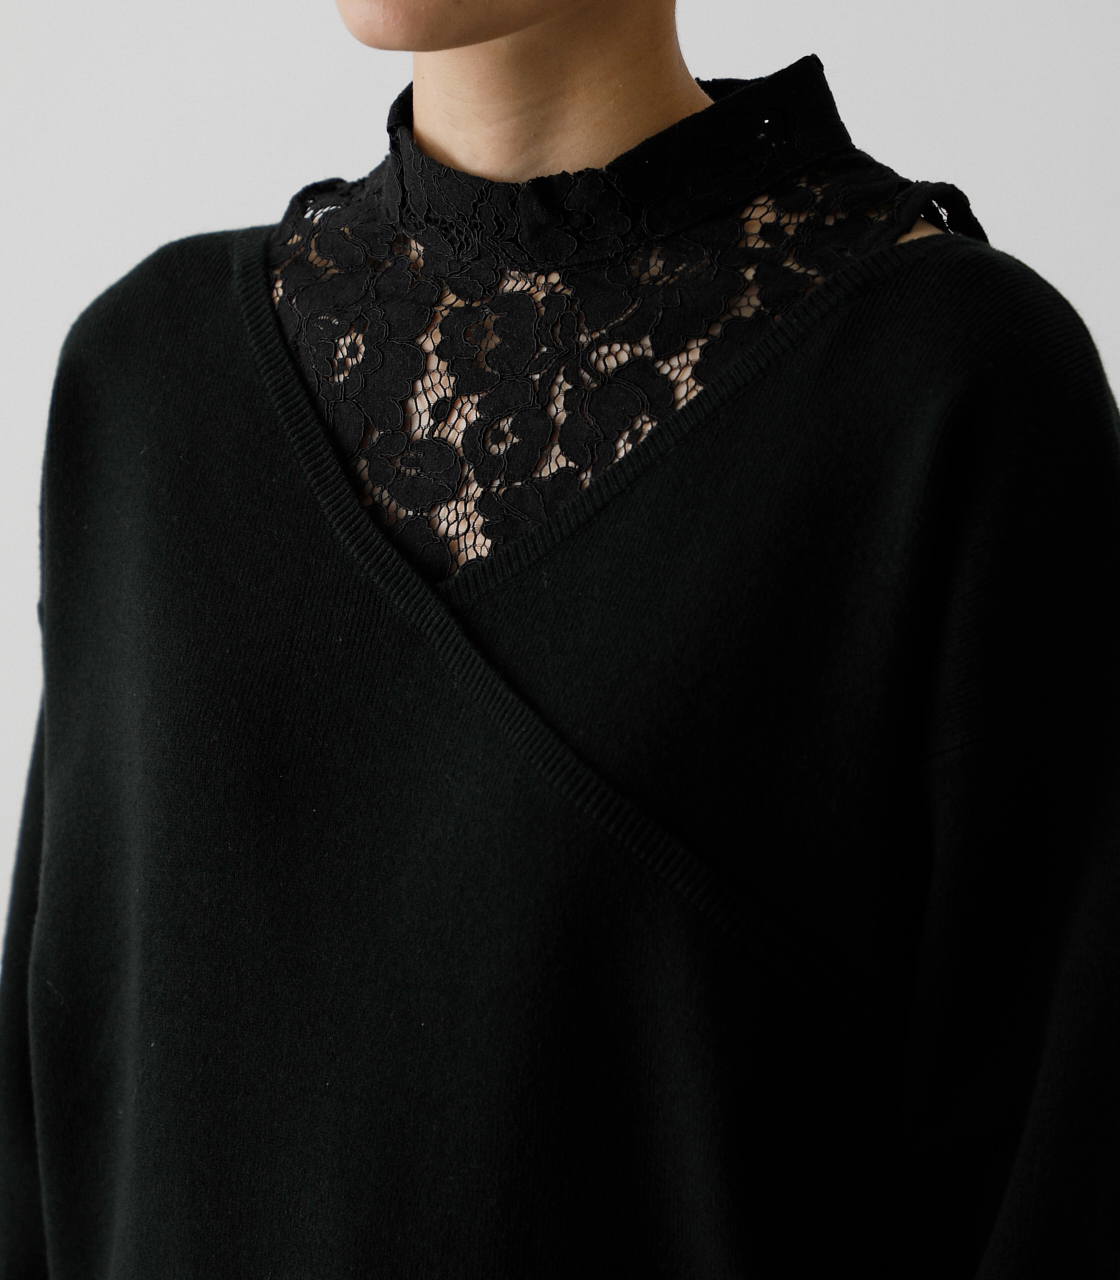 LACE DOCKING CACHE-COEUR TOPS/レースドッキングカシュクールトップス 詳細画像 BLK 9